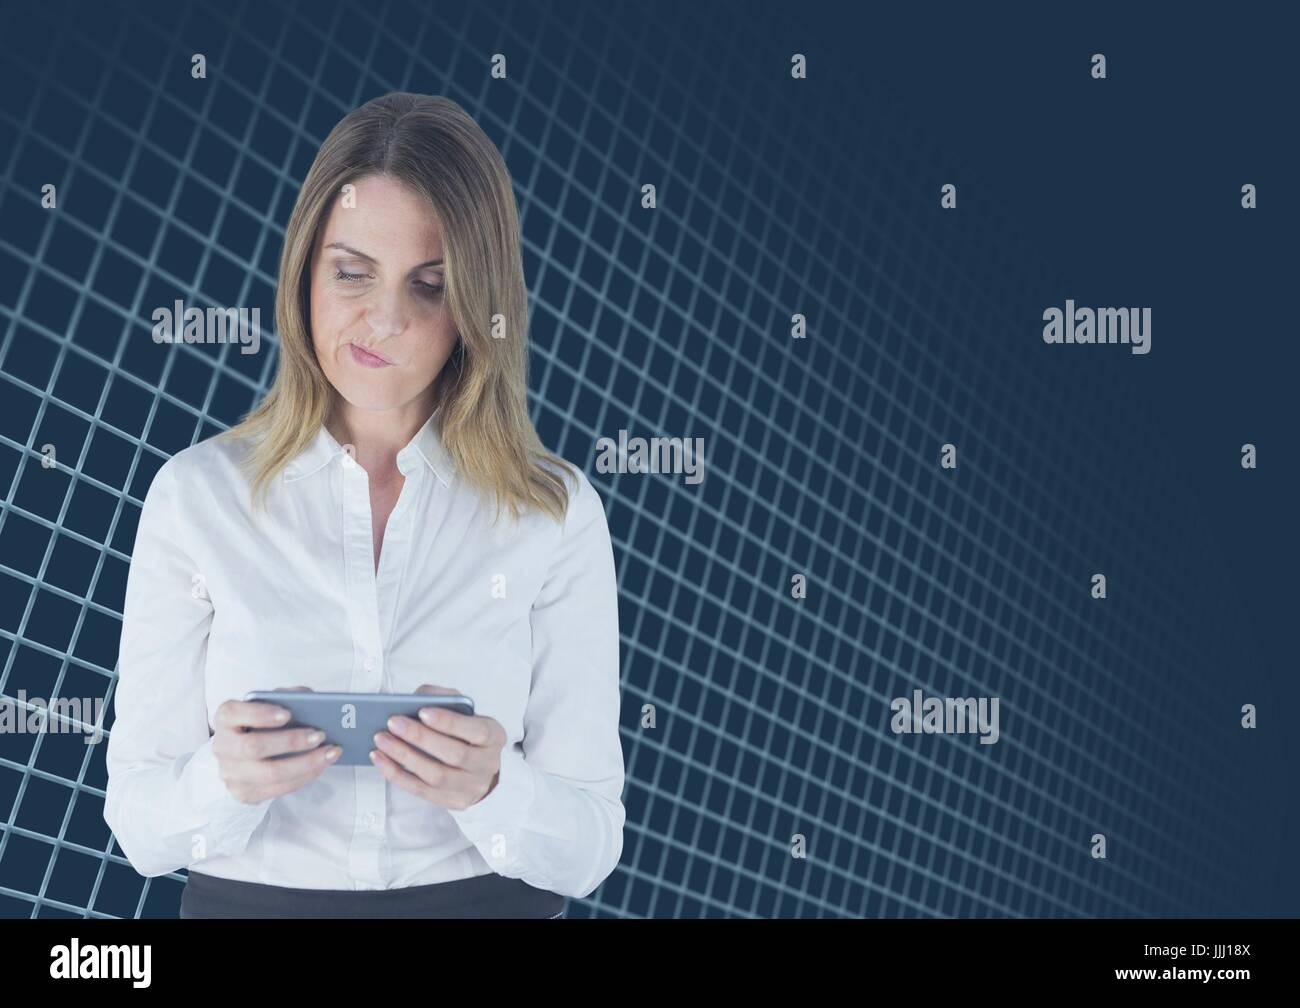 Dubious woman texting on blue interface - Stock Image